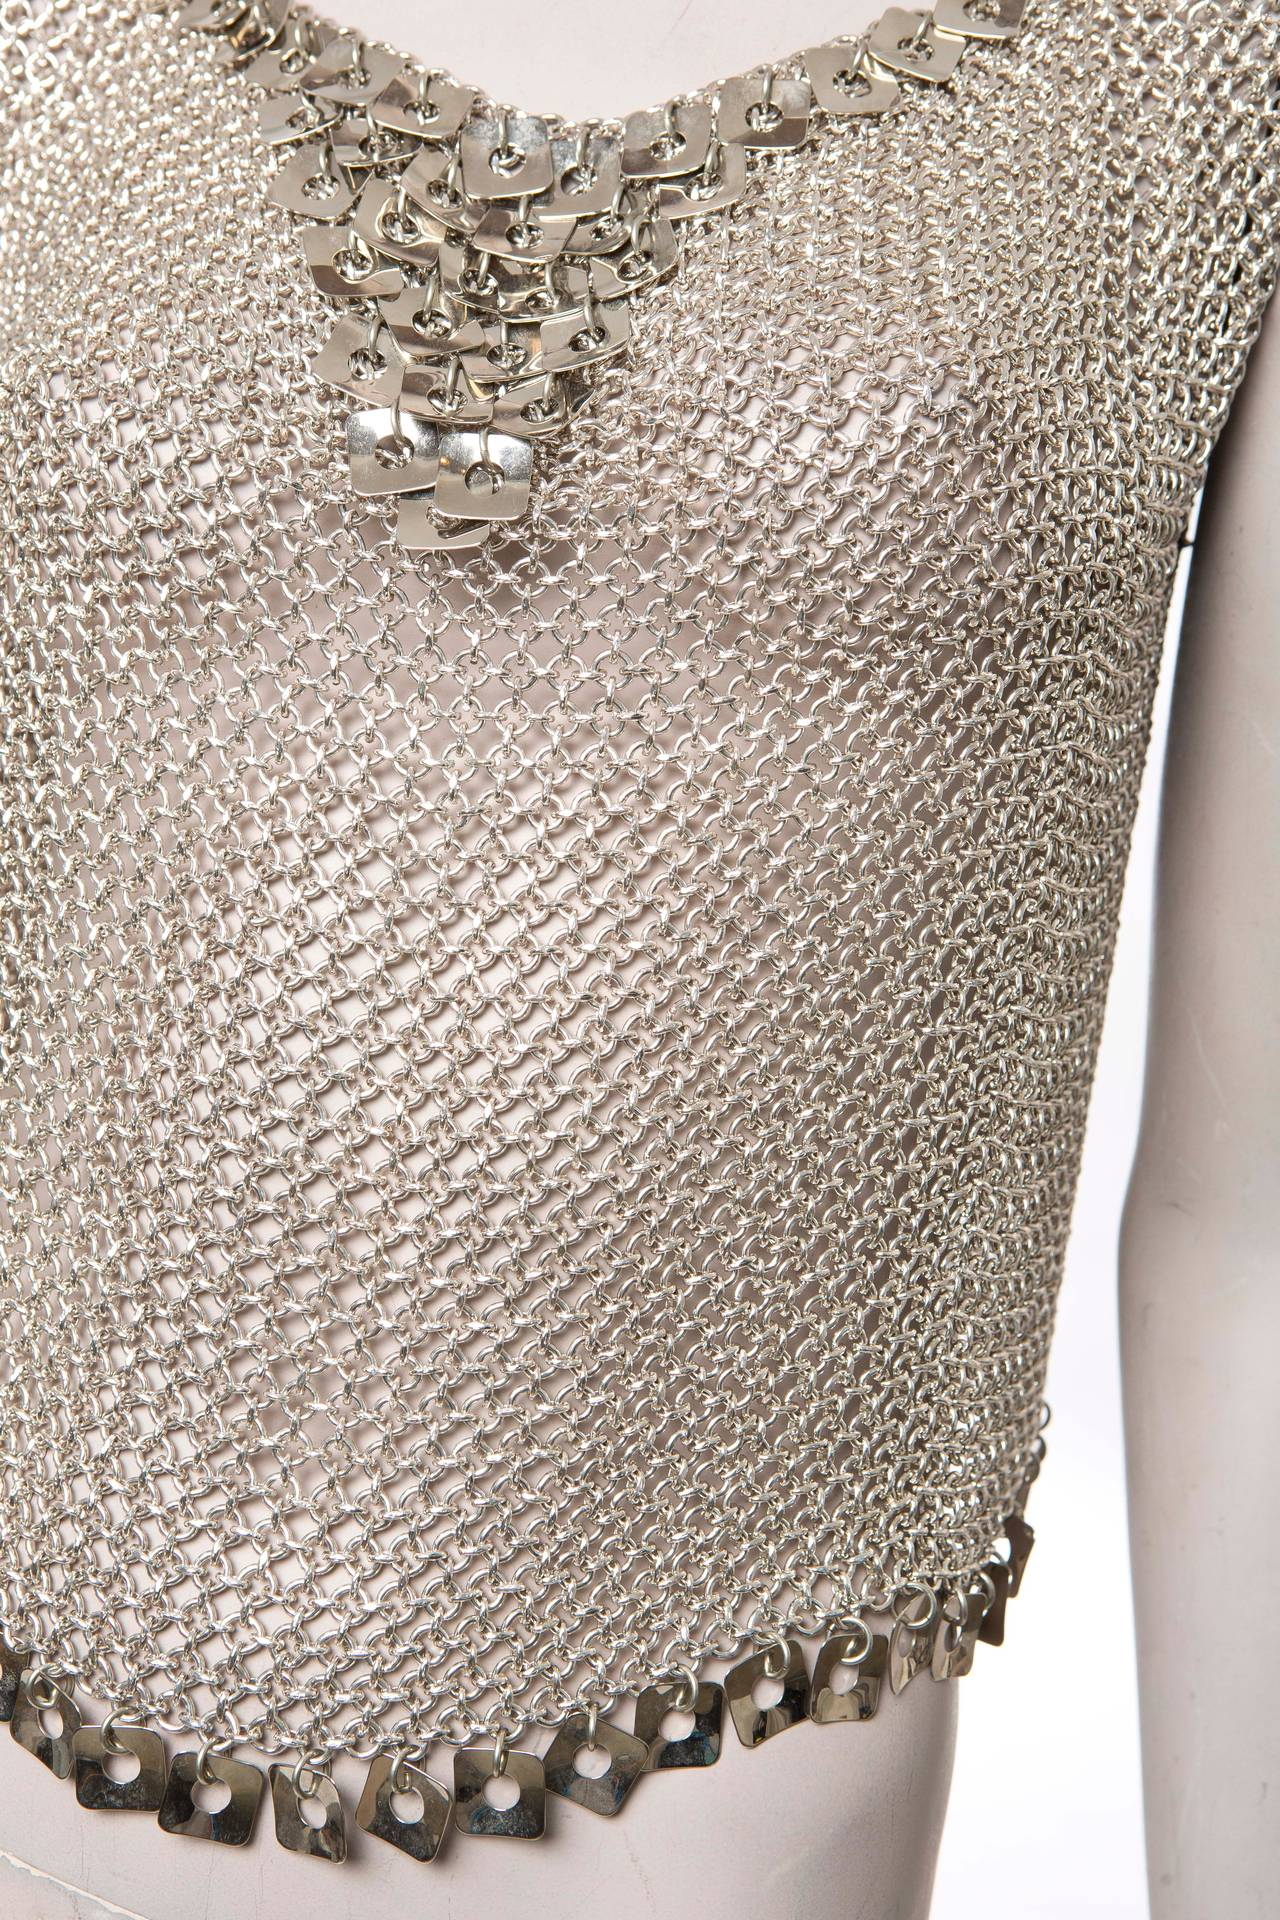 Women's Paco Rabanne Chain Mail Top, Circa 1970's For Sale